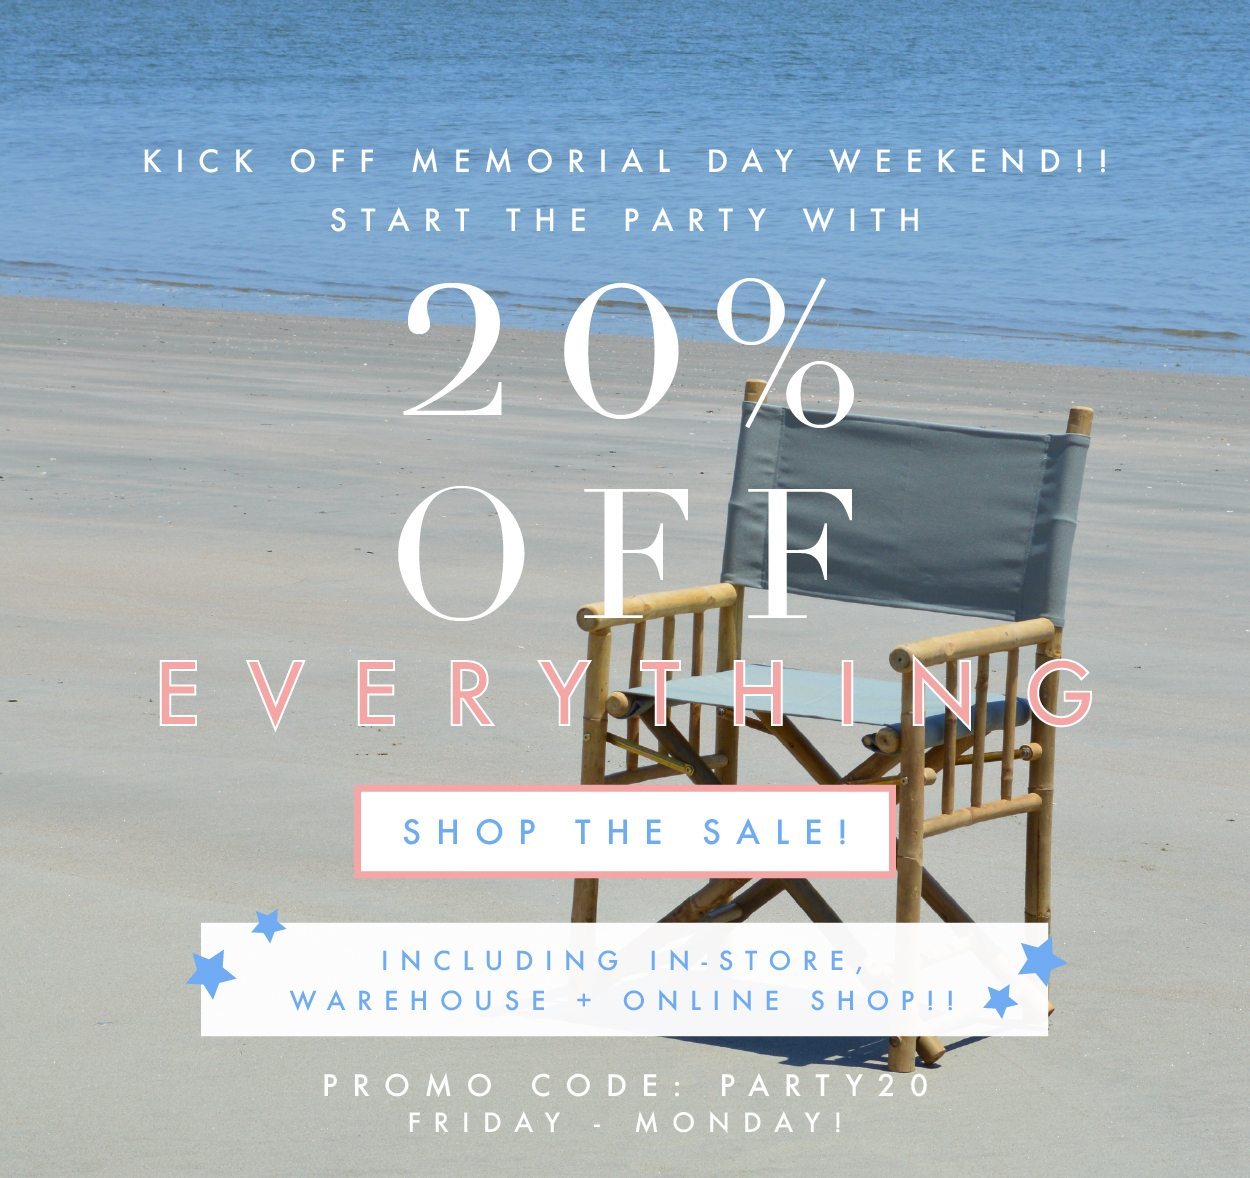 memorial-day-weekend-sale-graphic